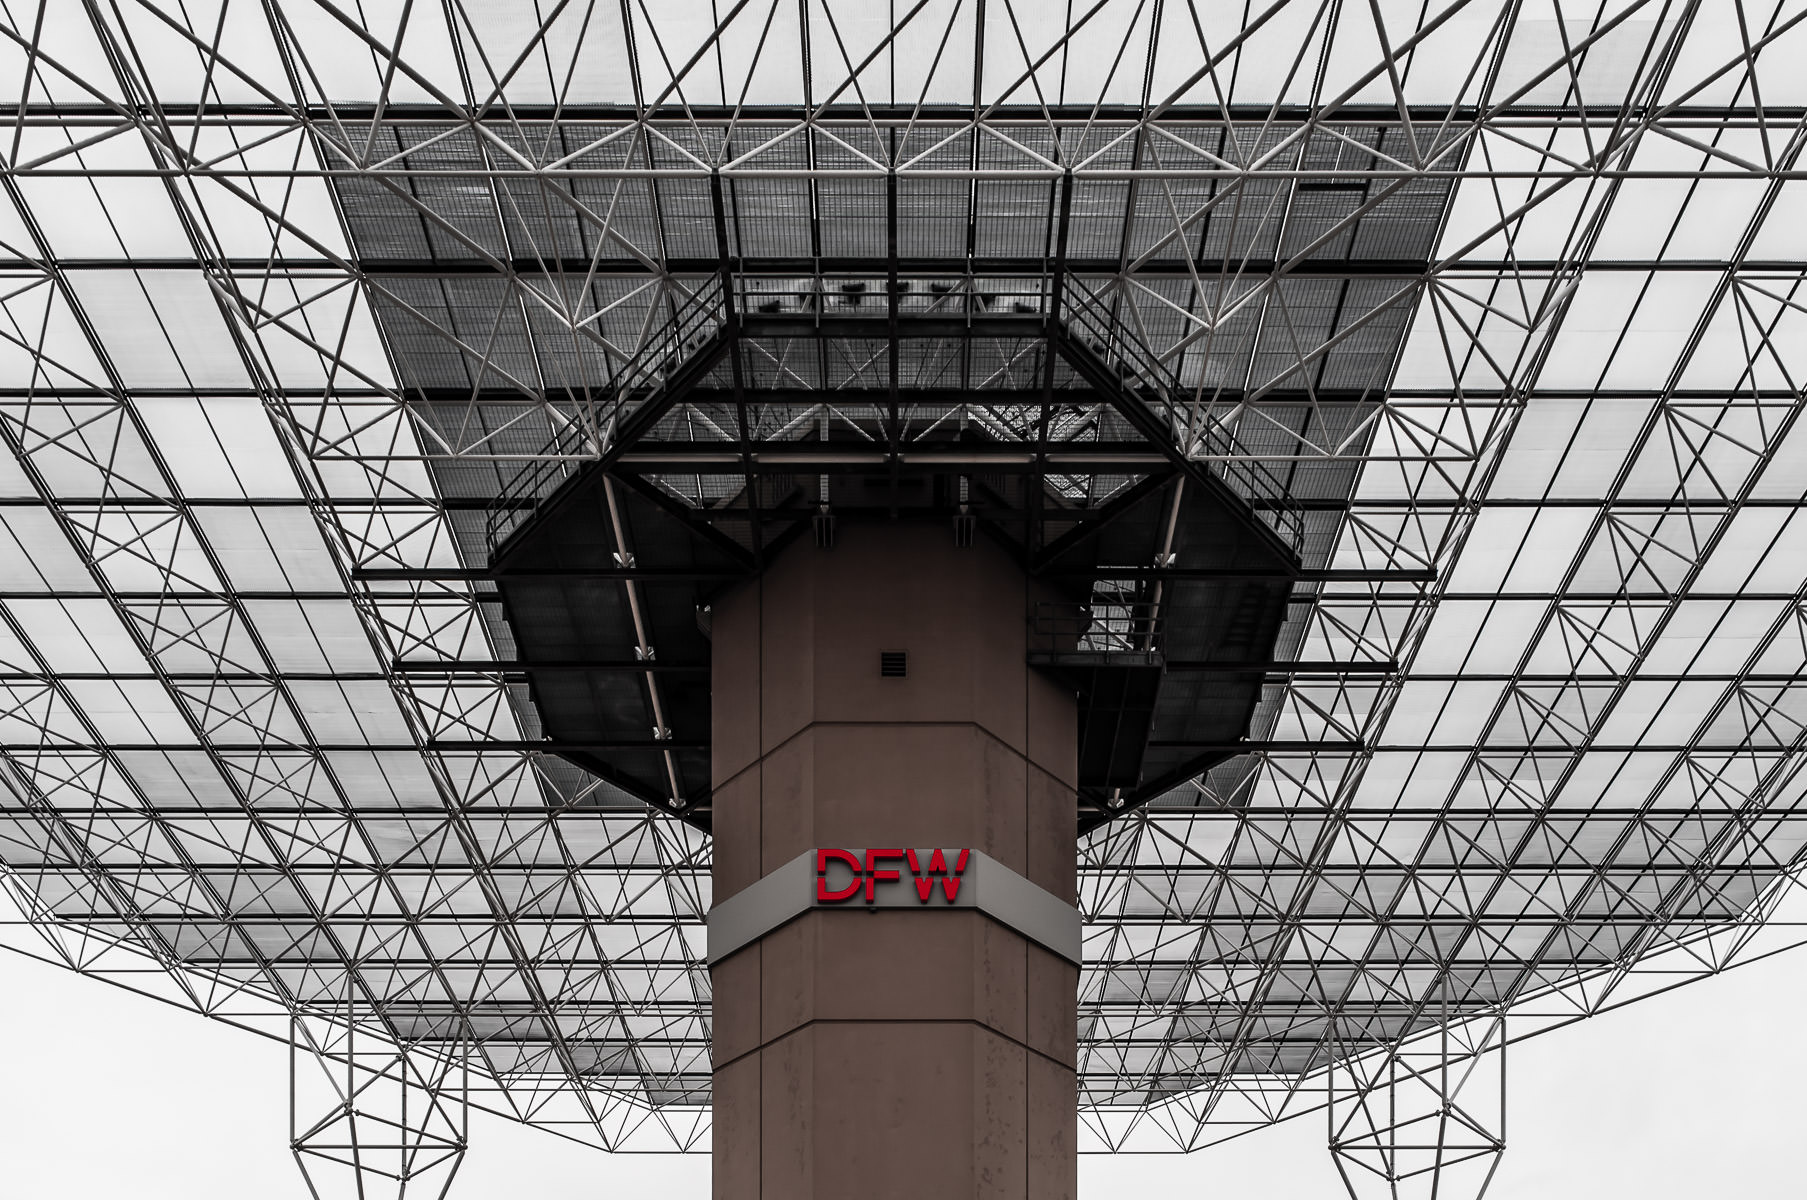 Detail of the FAA's Maverick VOR/DME at DFW International Airport, Texas.